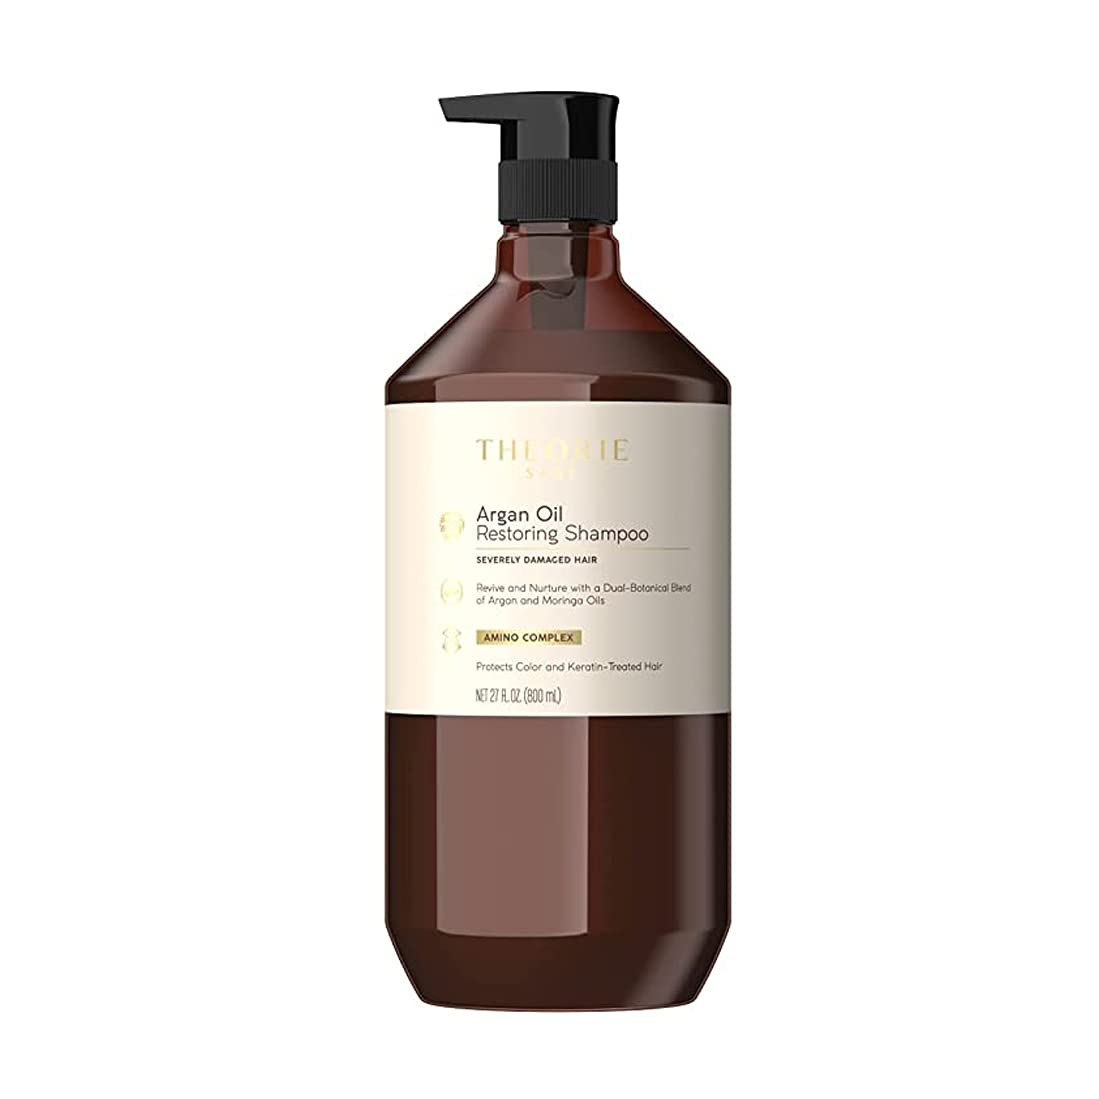 Amazon.com : THEORIE Argan Oil Restoring Shampoo- Rejuvenate & Moisturize -  For All Hair Types - Sulfate Free - Safe for Color & Keratin Treated Hair,  800mL - Label Design May Vary : Beauty